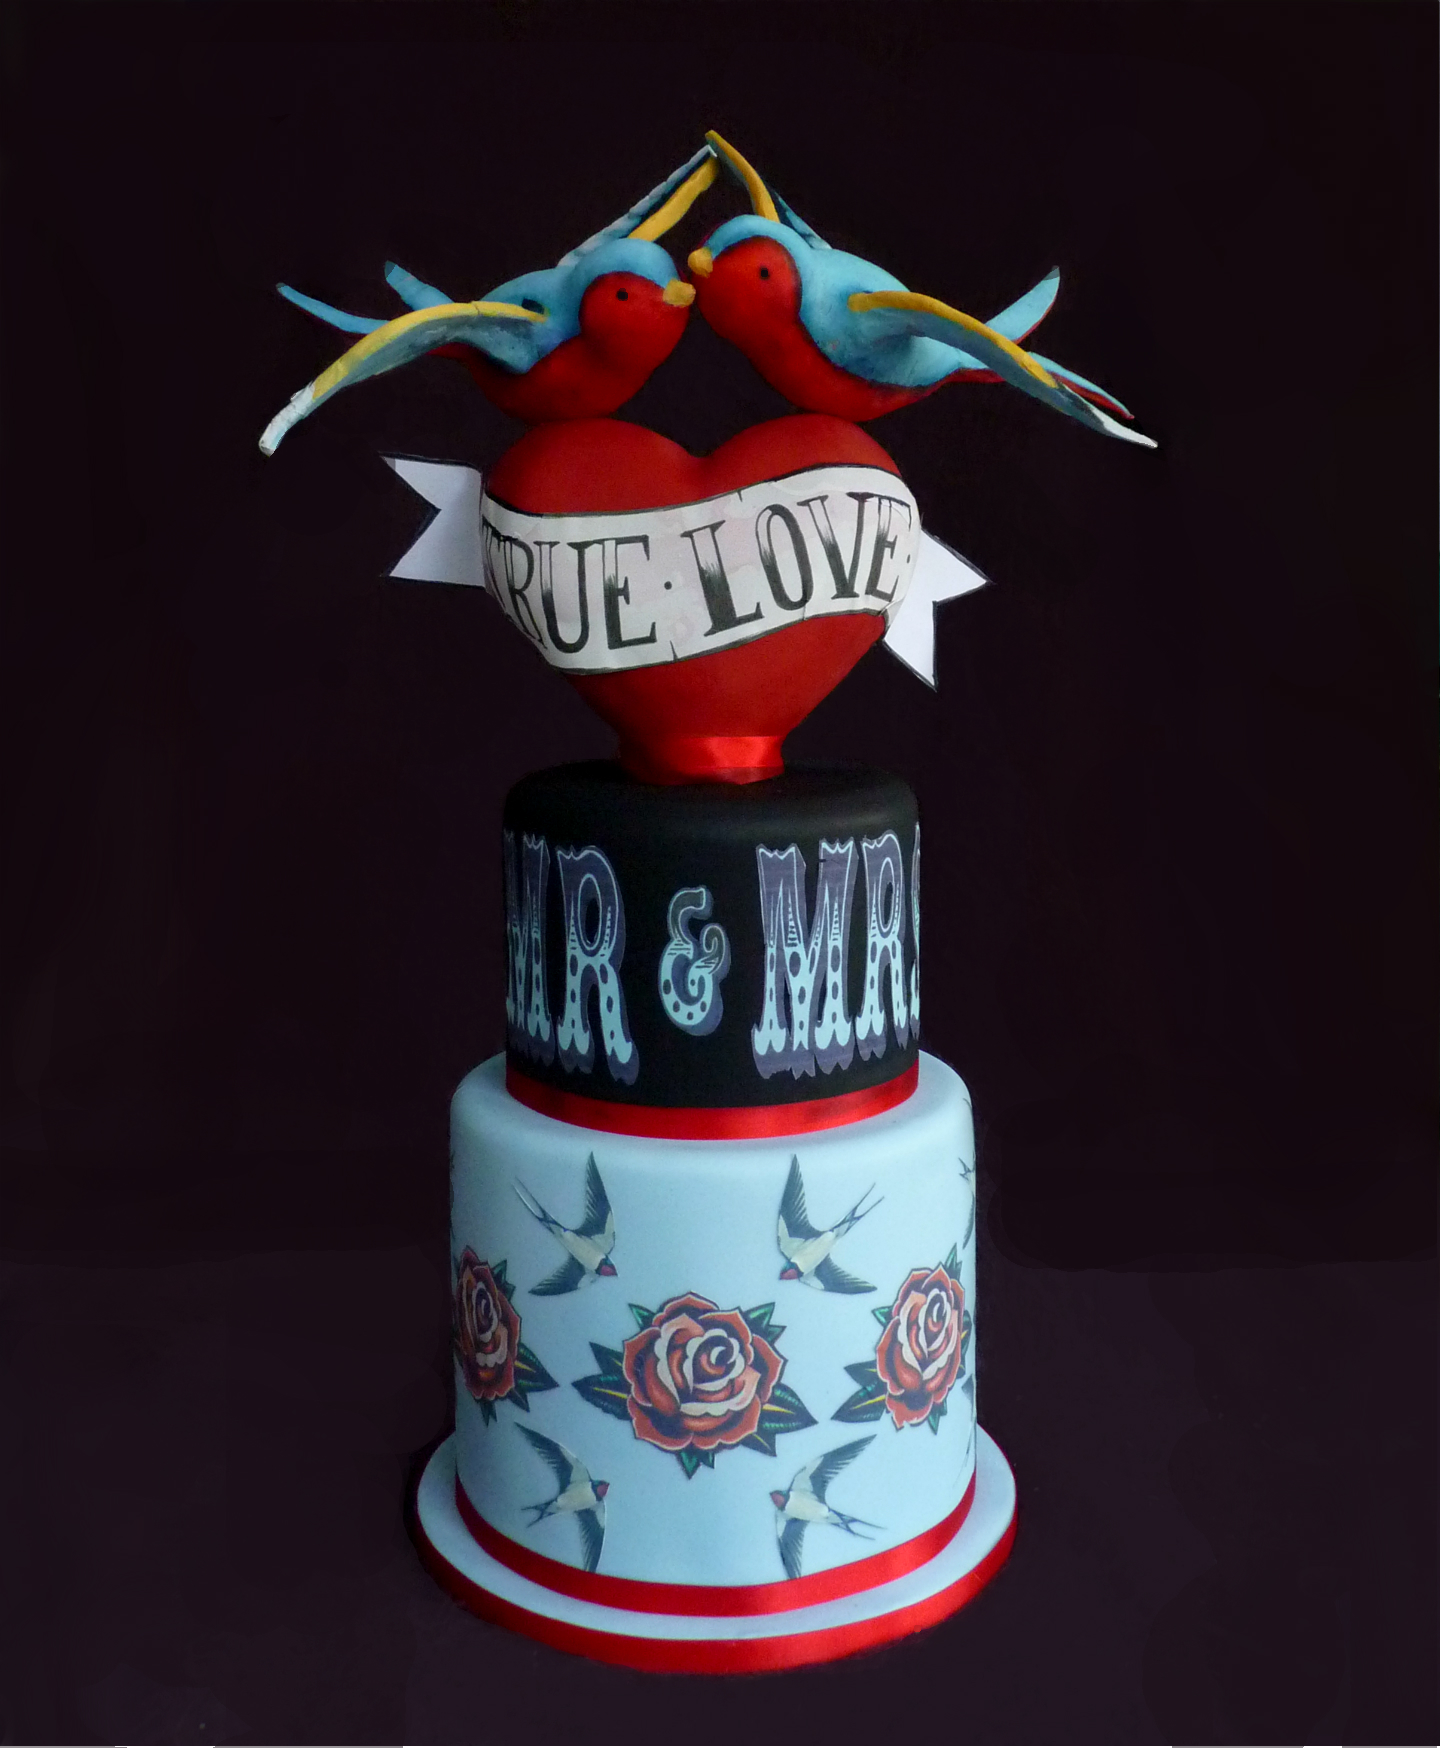 'True Love' Wedding Cake